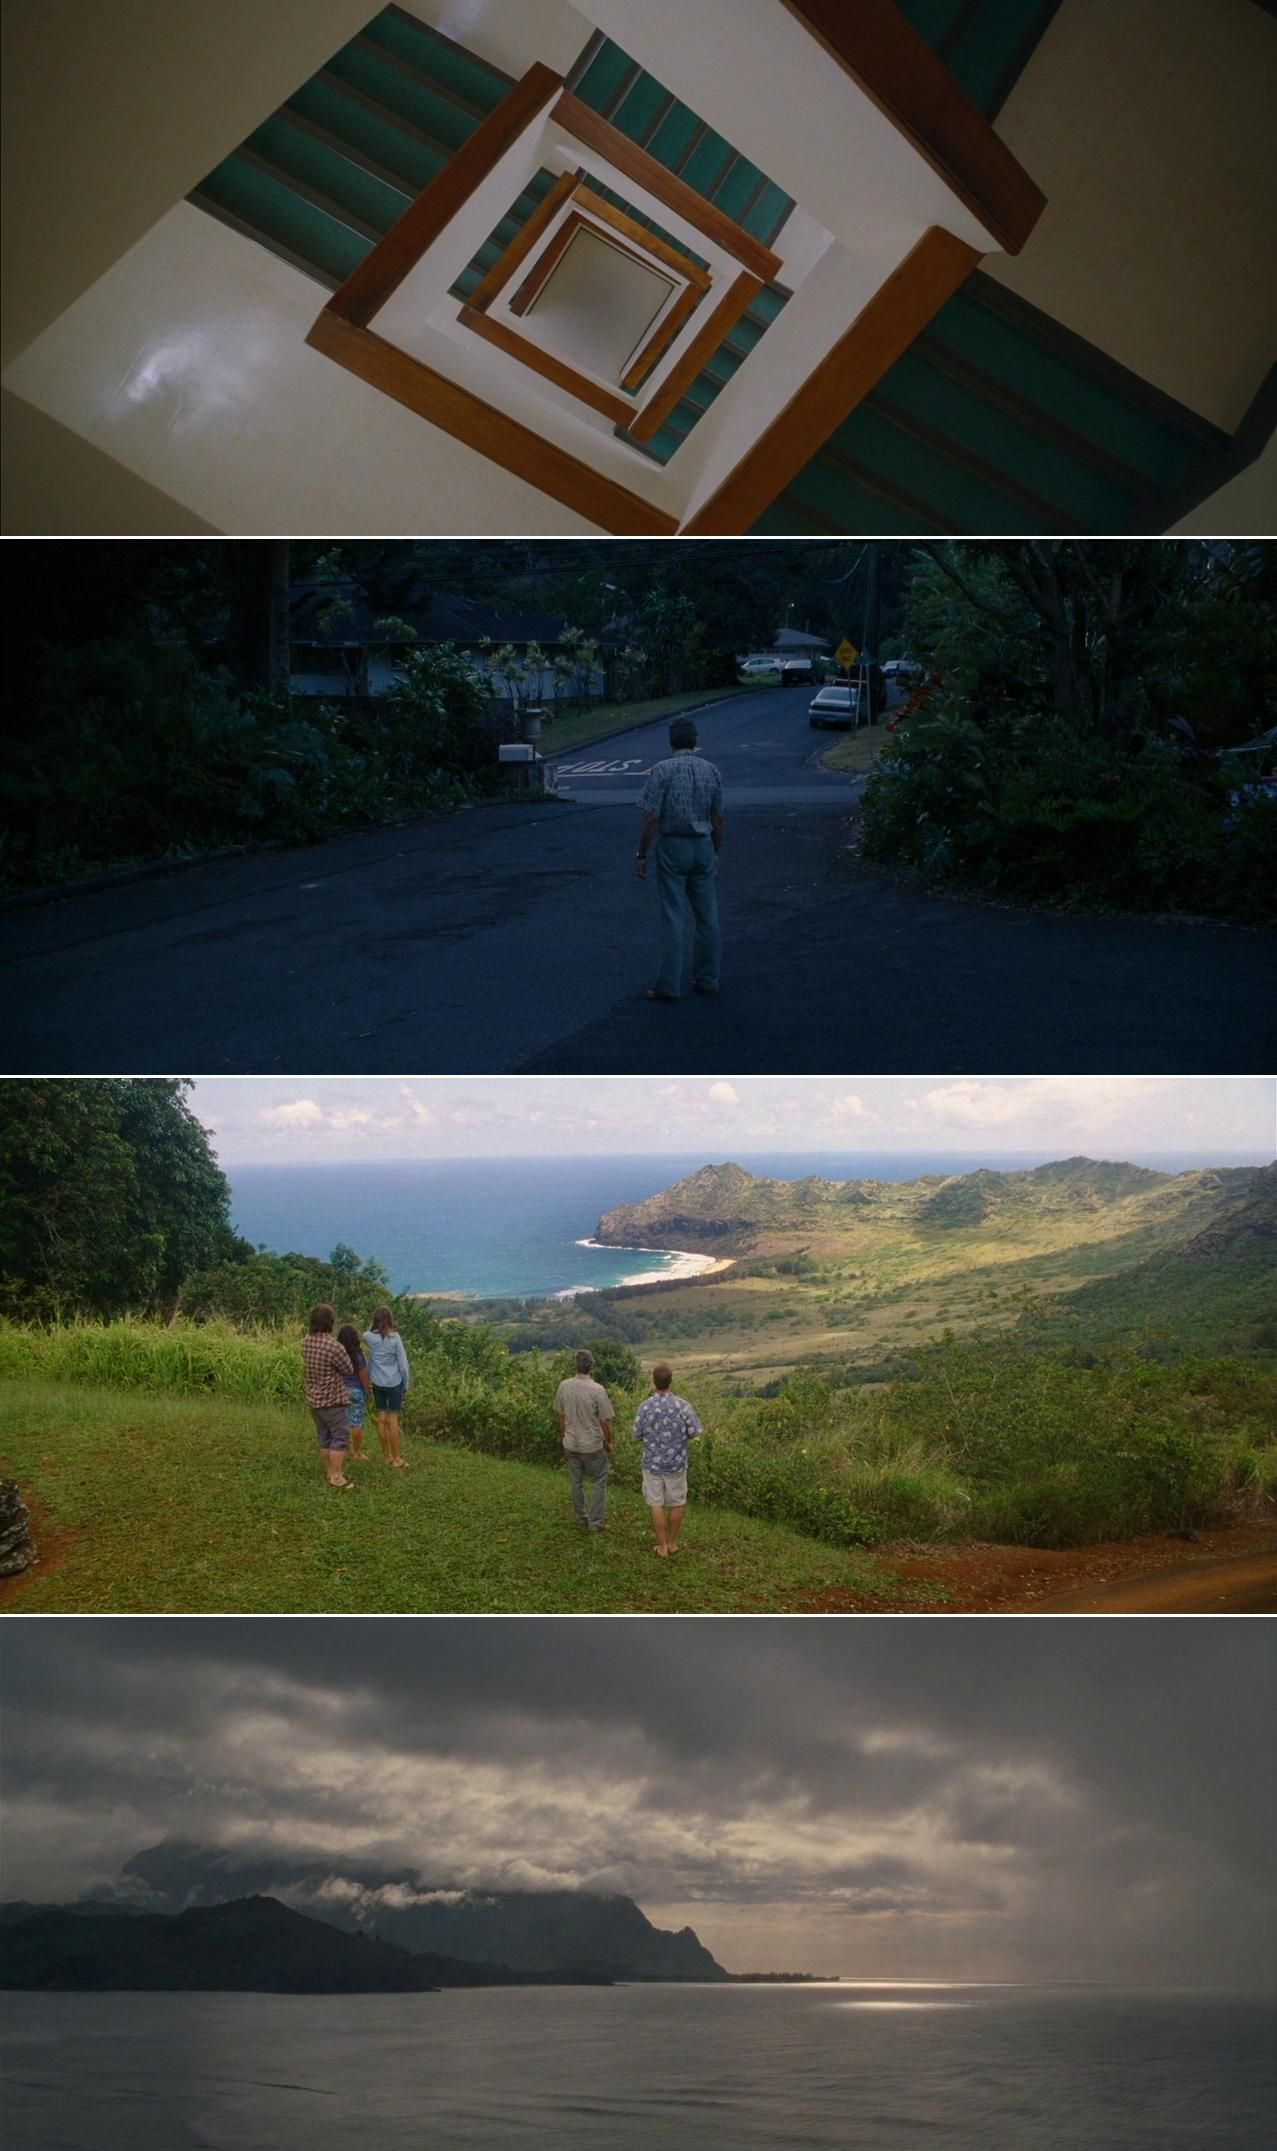 The Descendants 2011 Cinematography By Phedon Papamichael Directed By Alexander Payne Cinematography Feature Film Film Stills